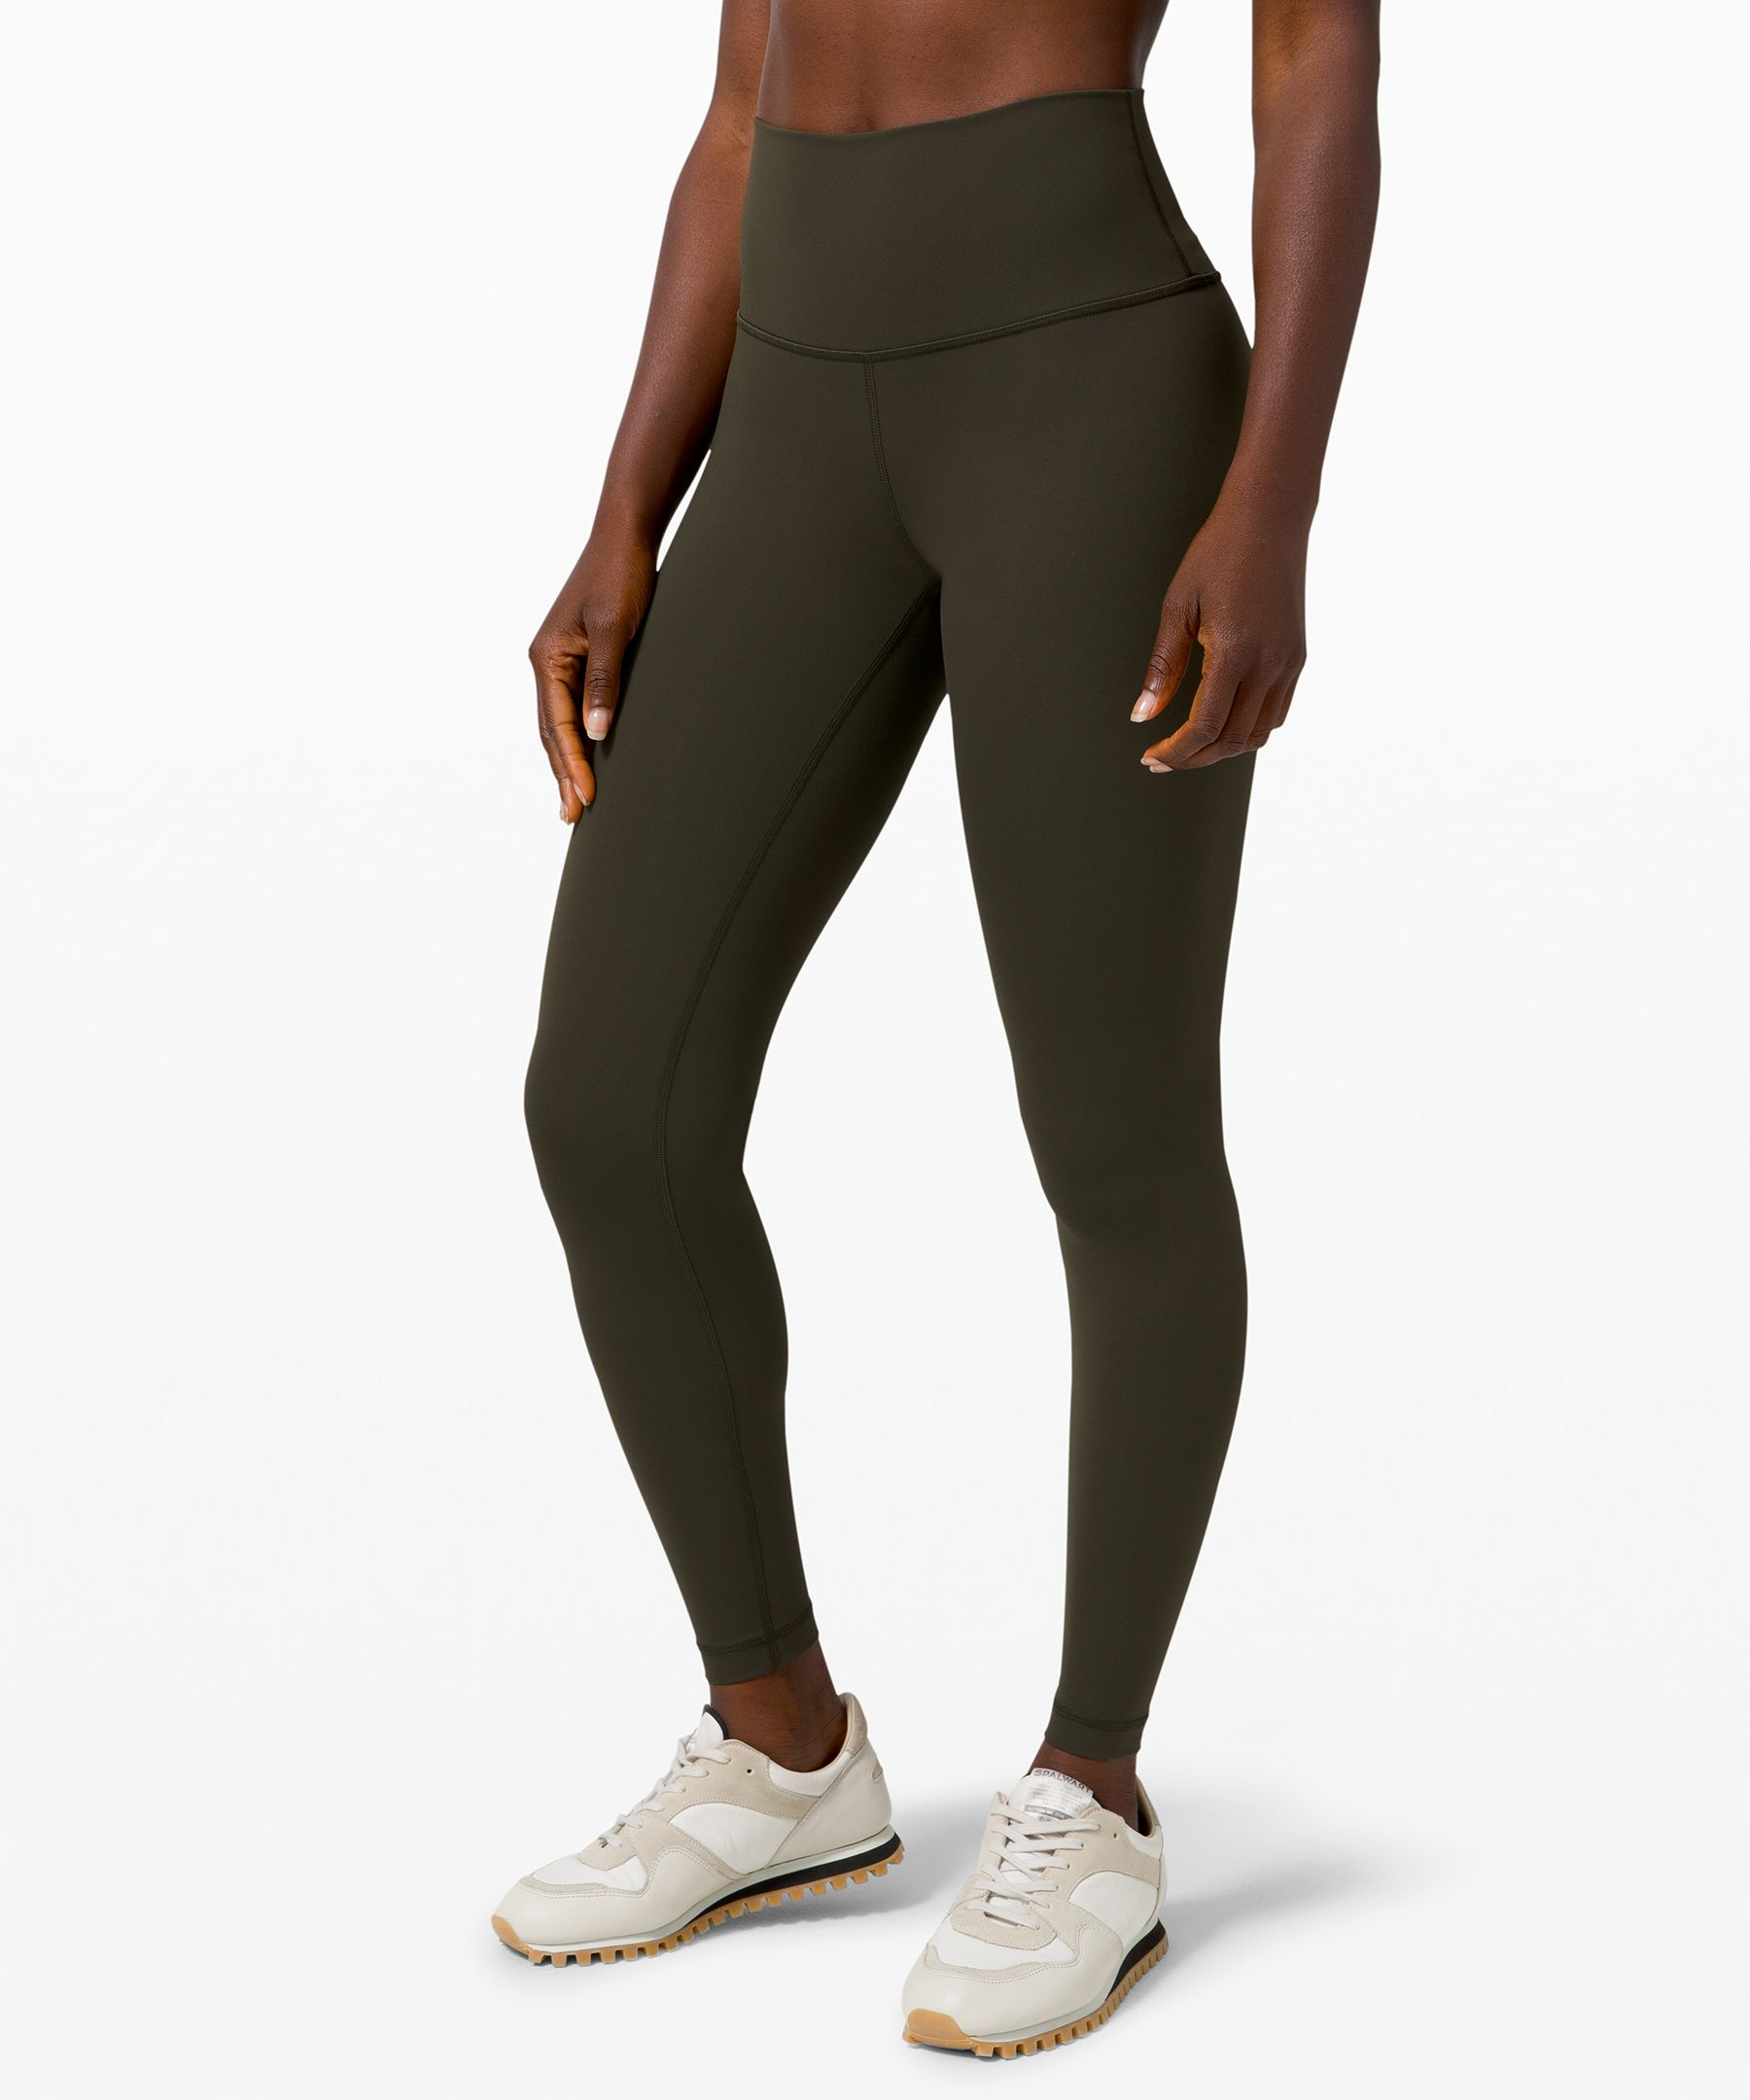 The one that started it all. Lunge, train, or flow in our versatile Wunder Under collection. Powered by Luxtreme™ fabric, these tights are a sweaty staple.